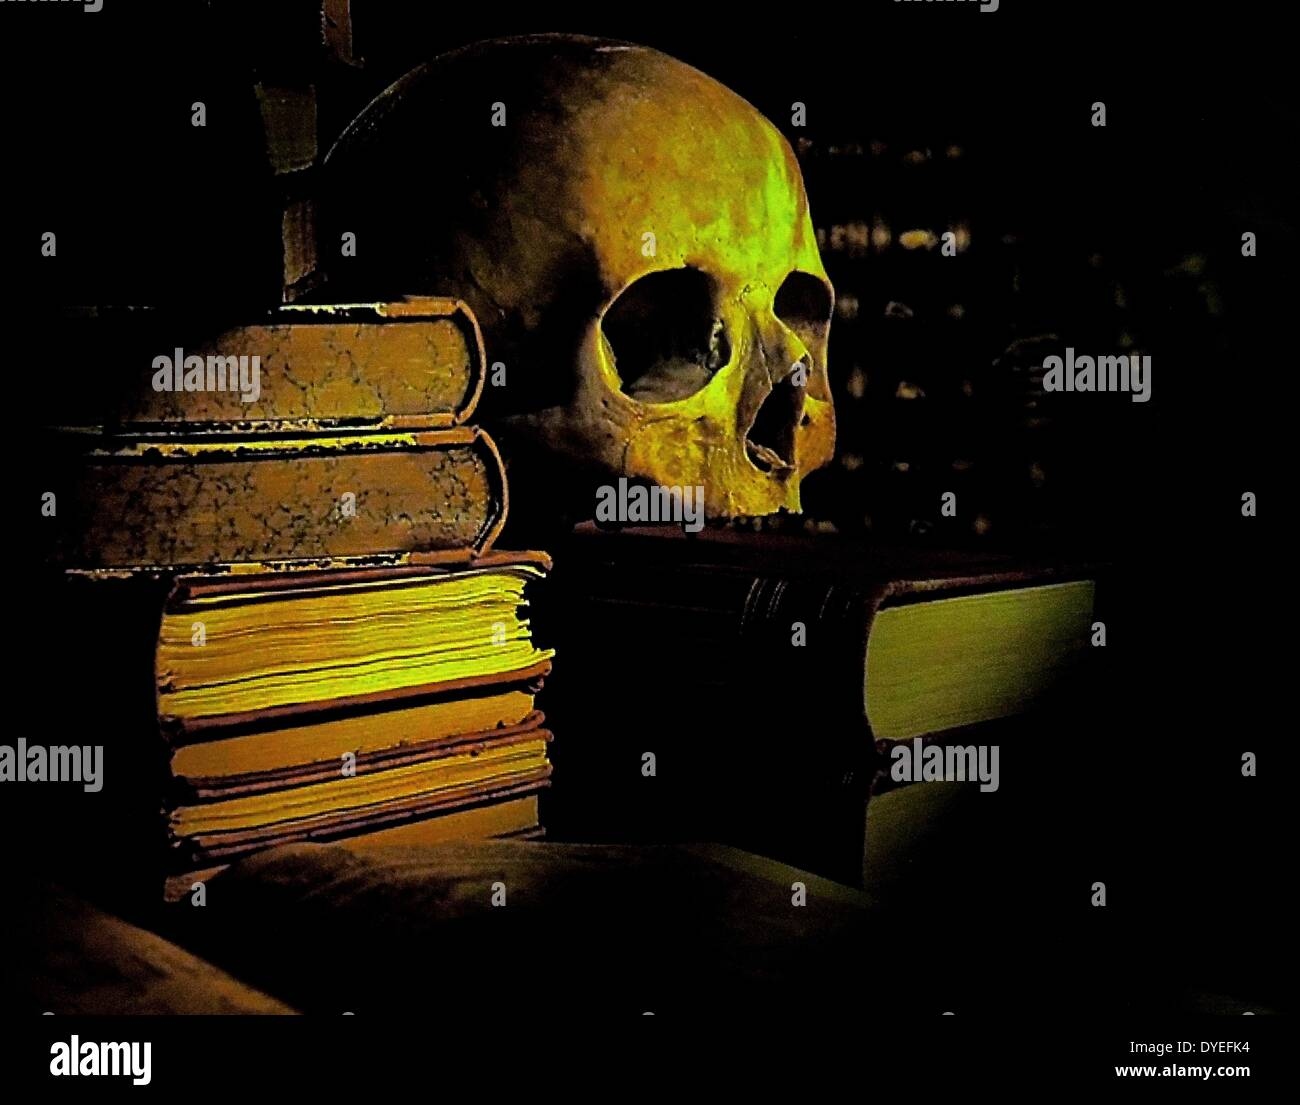 Scene Depicting a skull or Memento Mori with Books 2013 A.D. - Stock Image